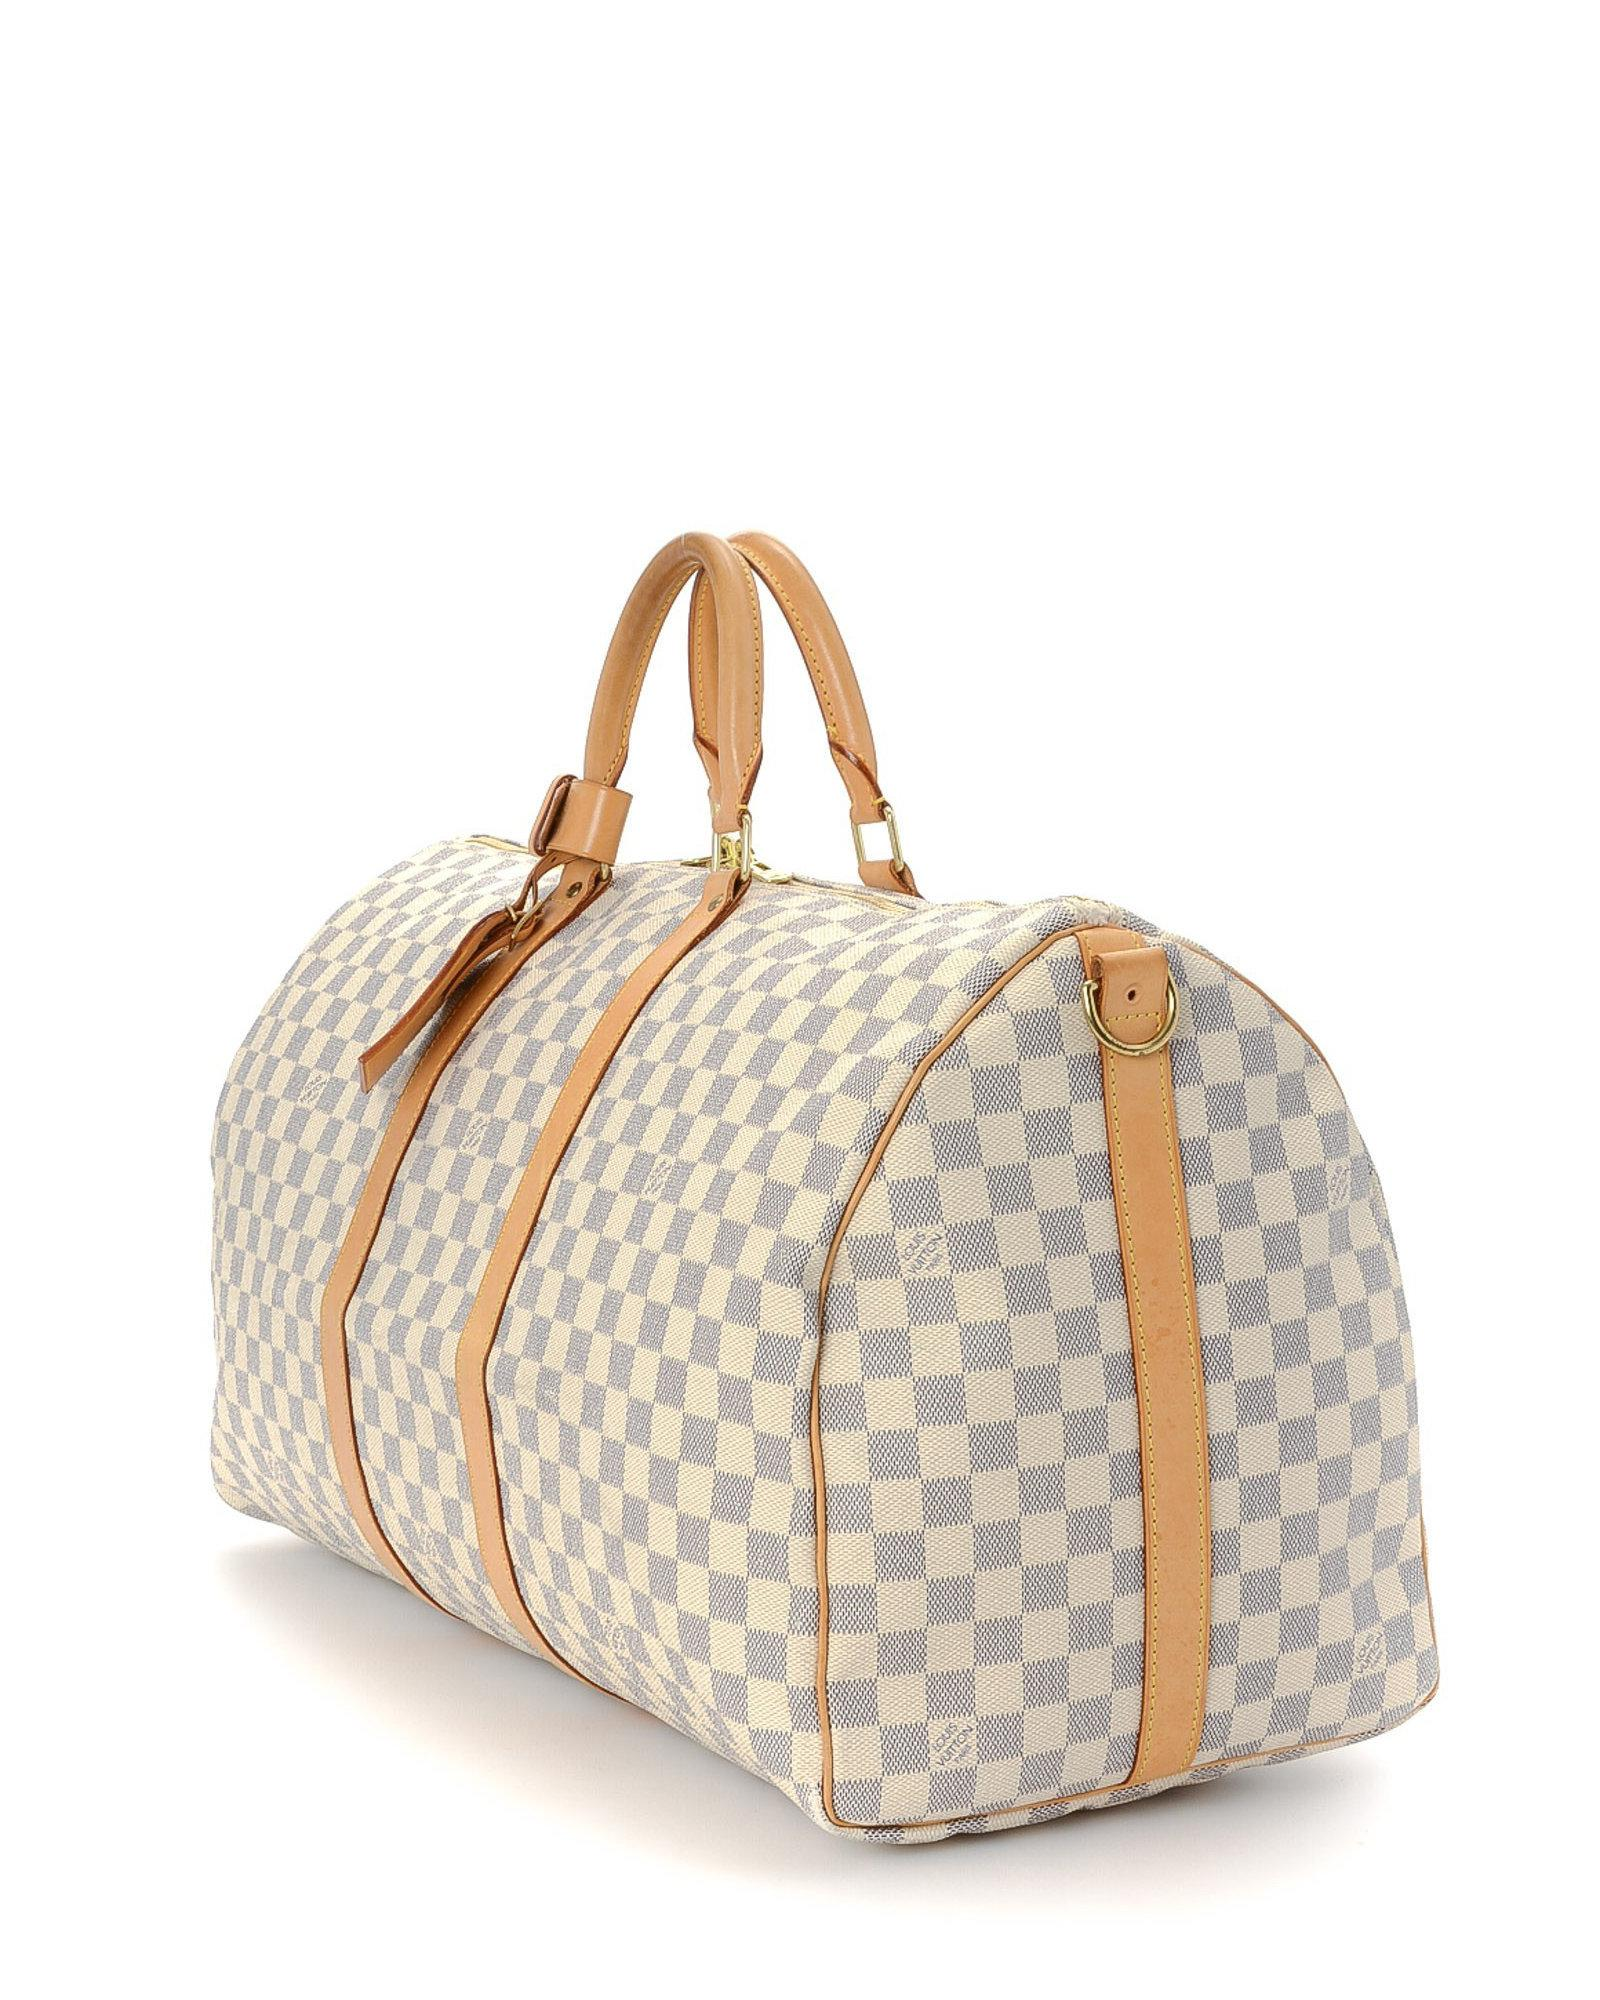 74f7ed3f2a5d Louis Vuitton Keepall Bandoulière 55 Travel Bag - Vintage in White - Lyst